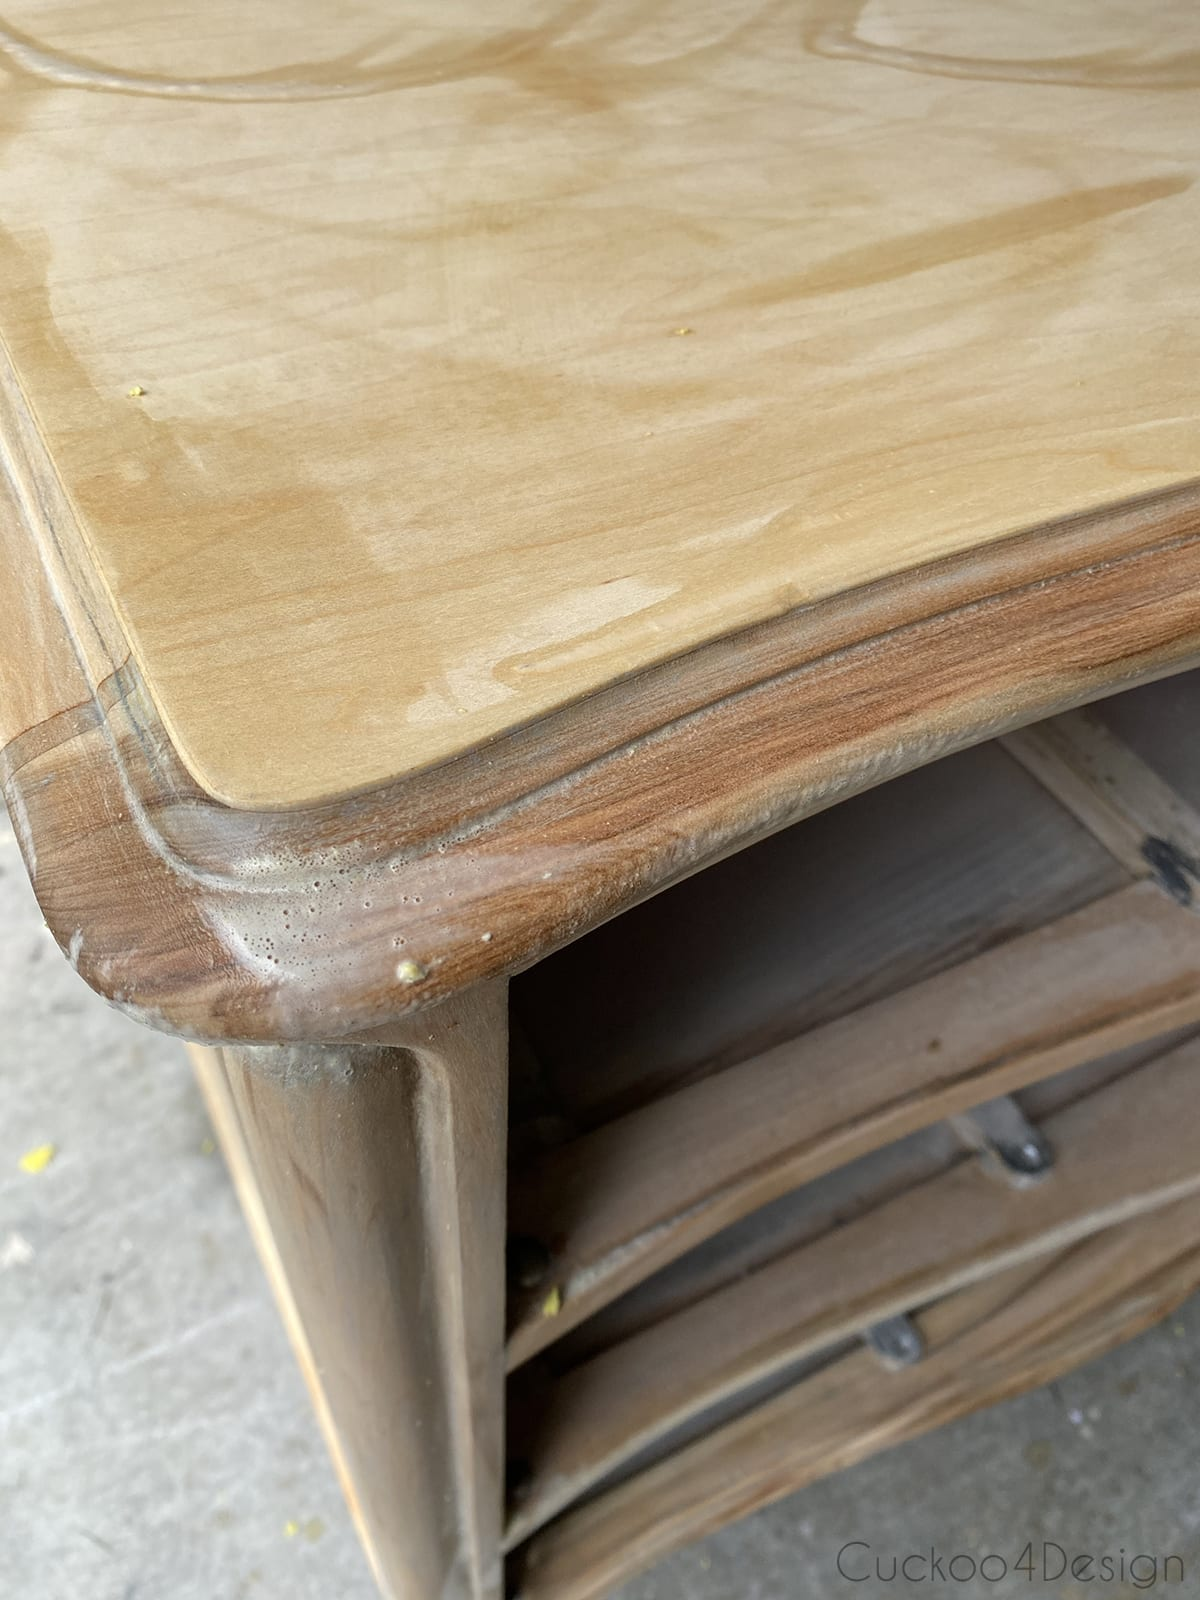 reaction of two-parts bleach on wood dresser